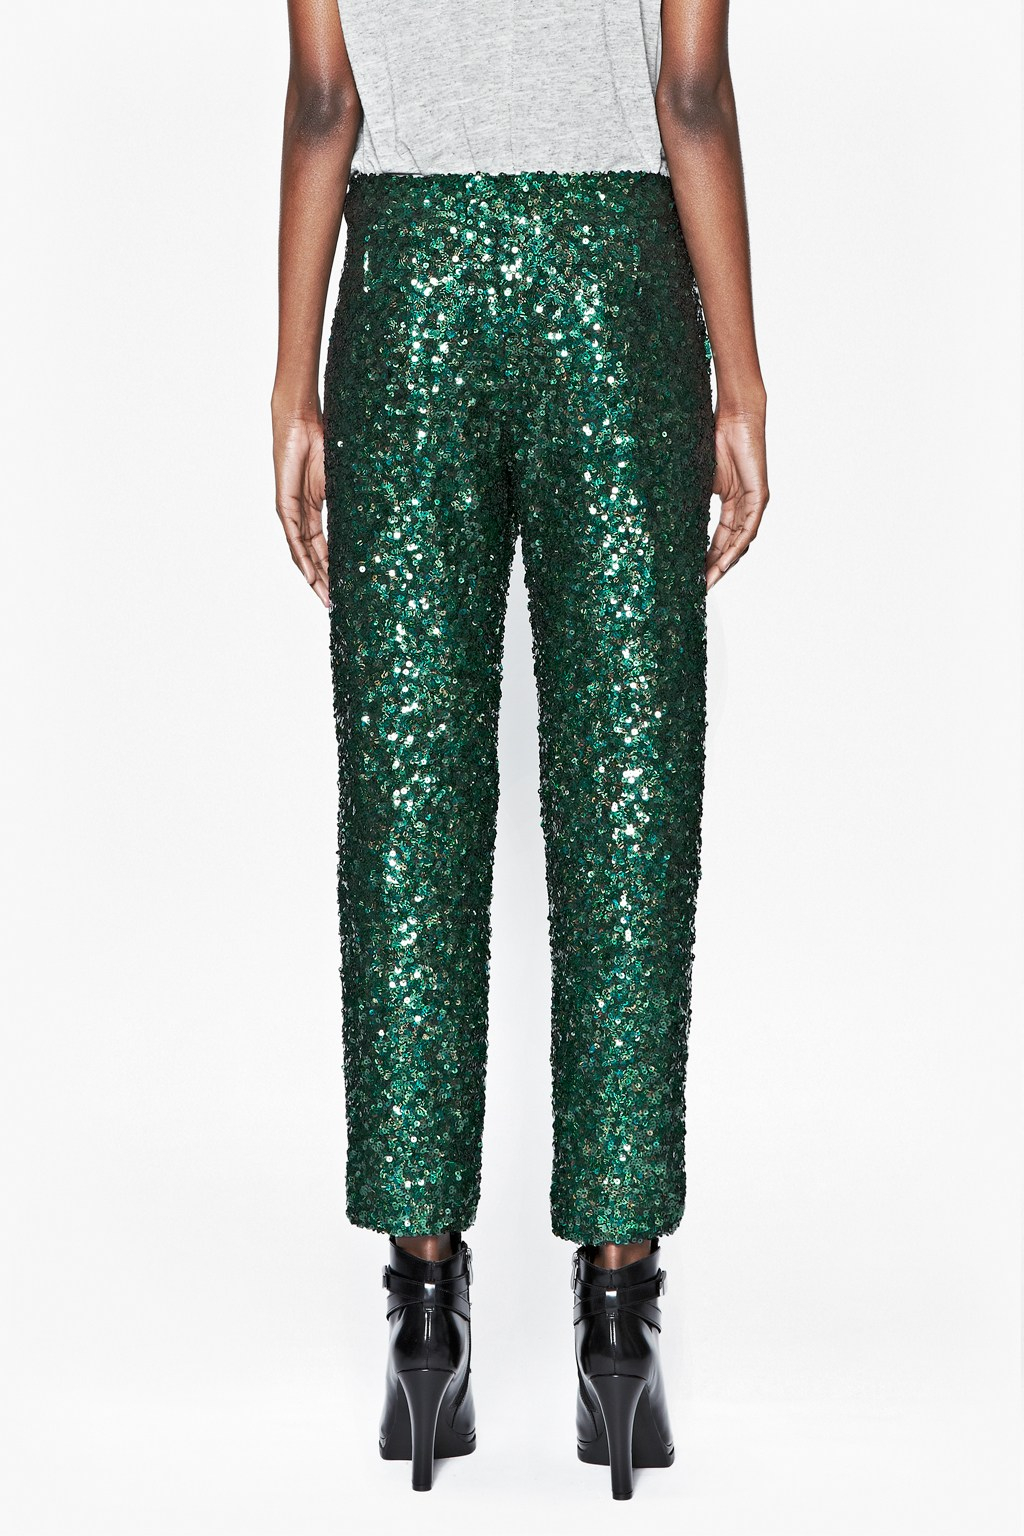 Lyst French Connection Sequined Skinny Pants In Black